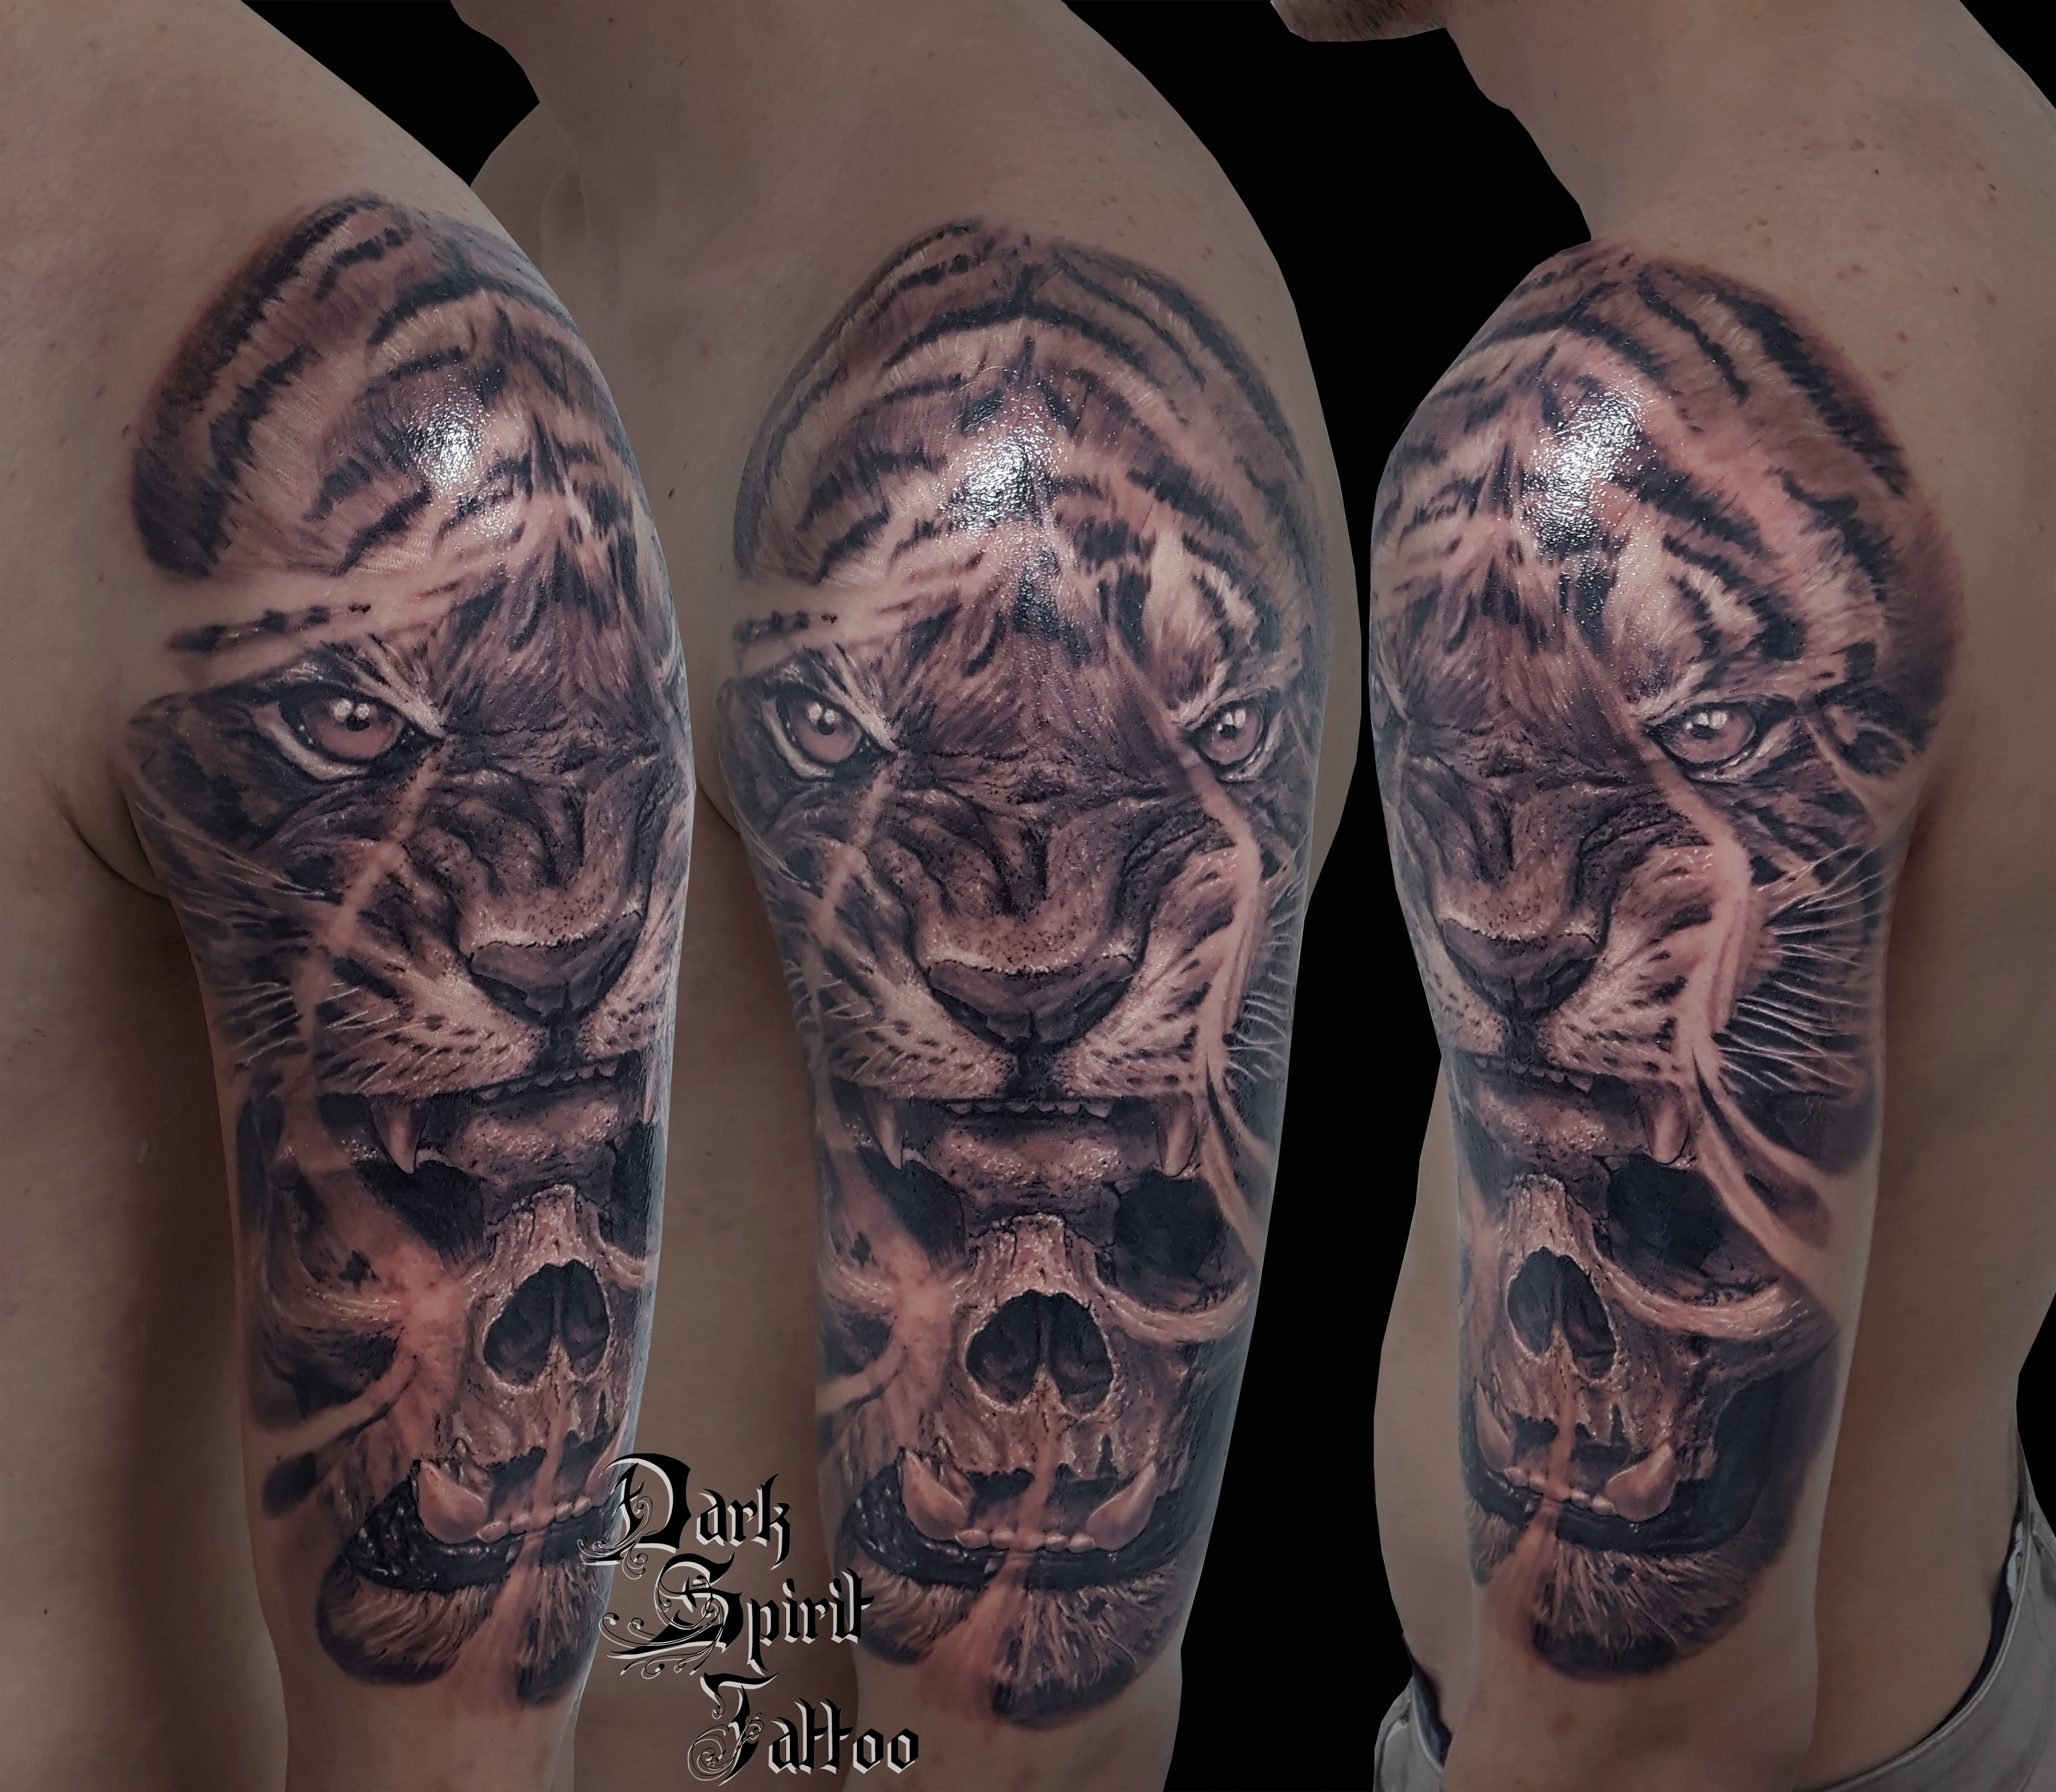 Tatouage 2 galerie tatouage - Tatouage tigre signification ...